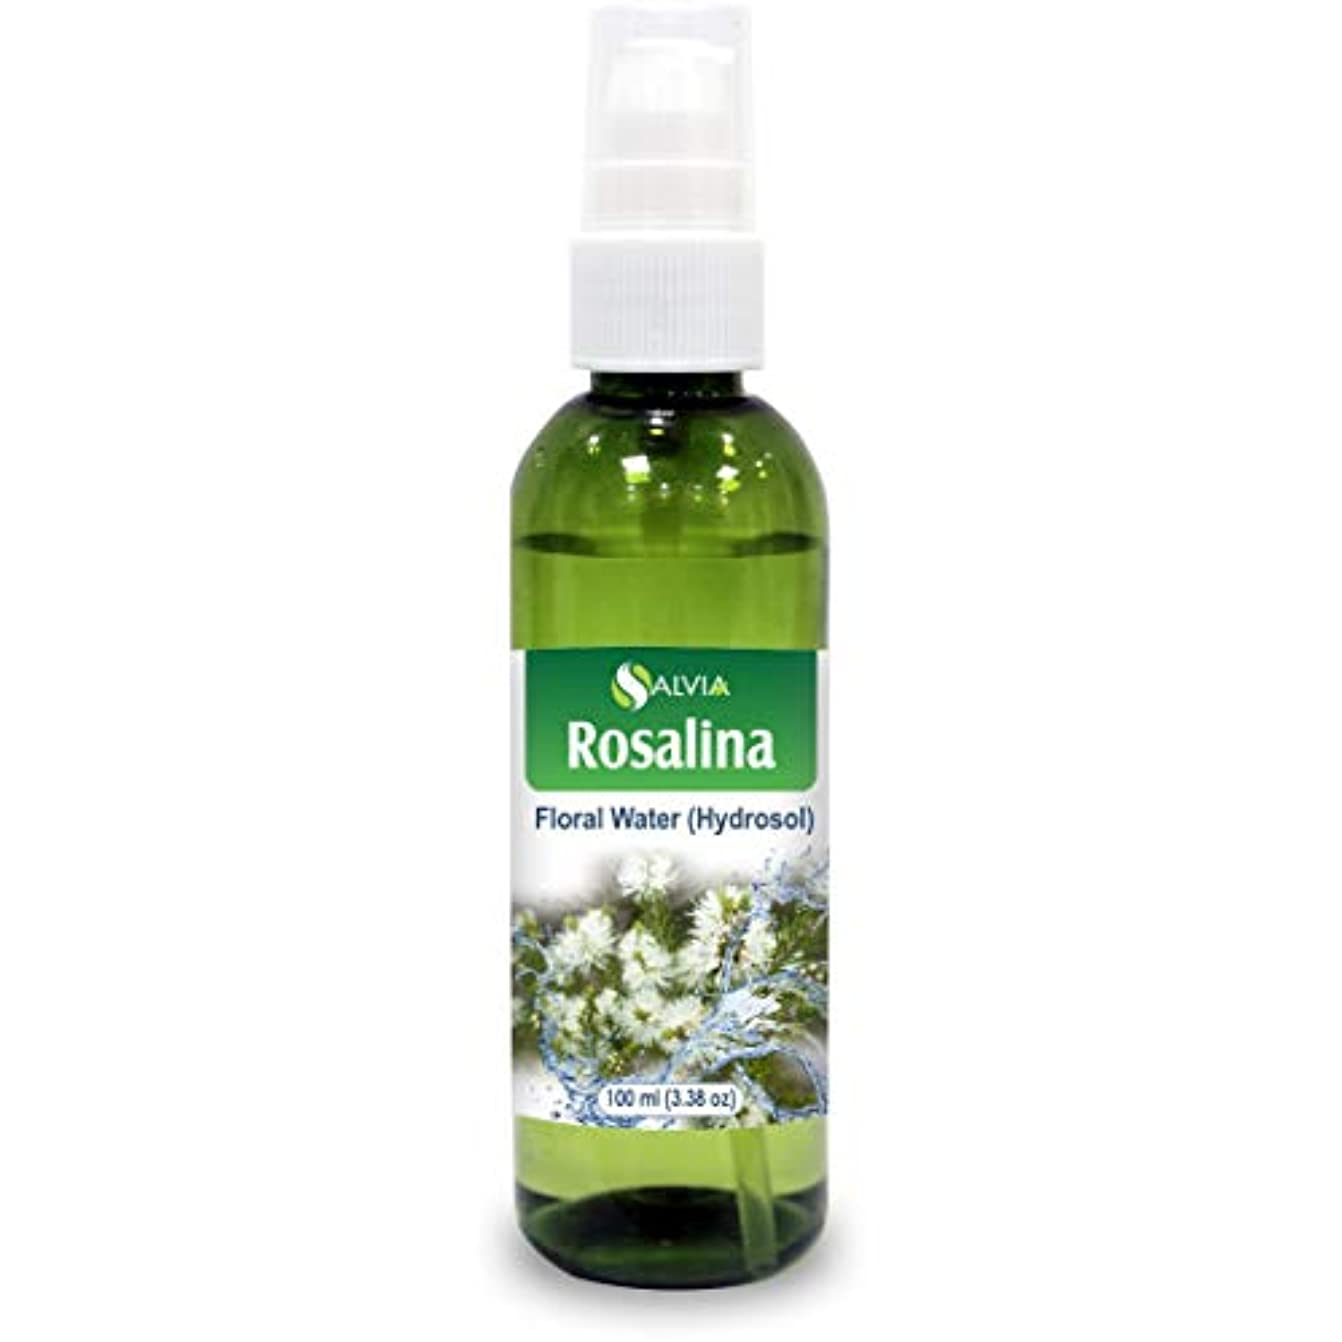 Rosalina Oil Floral Water 100ml (Hydrosol) 100% Pure And Natural